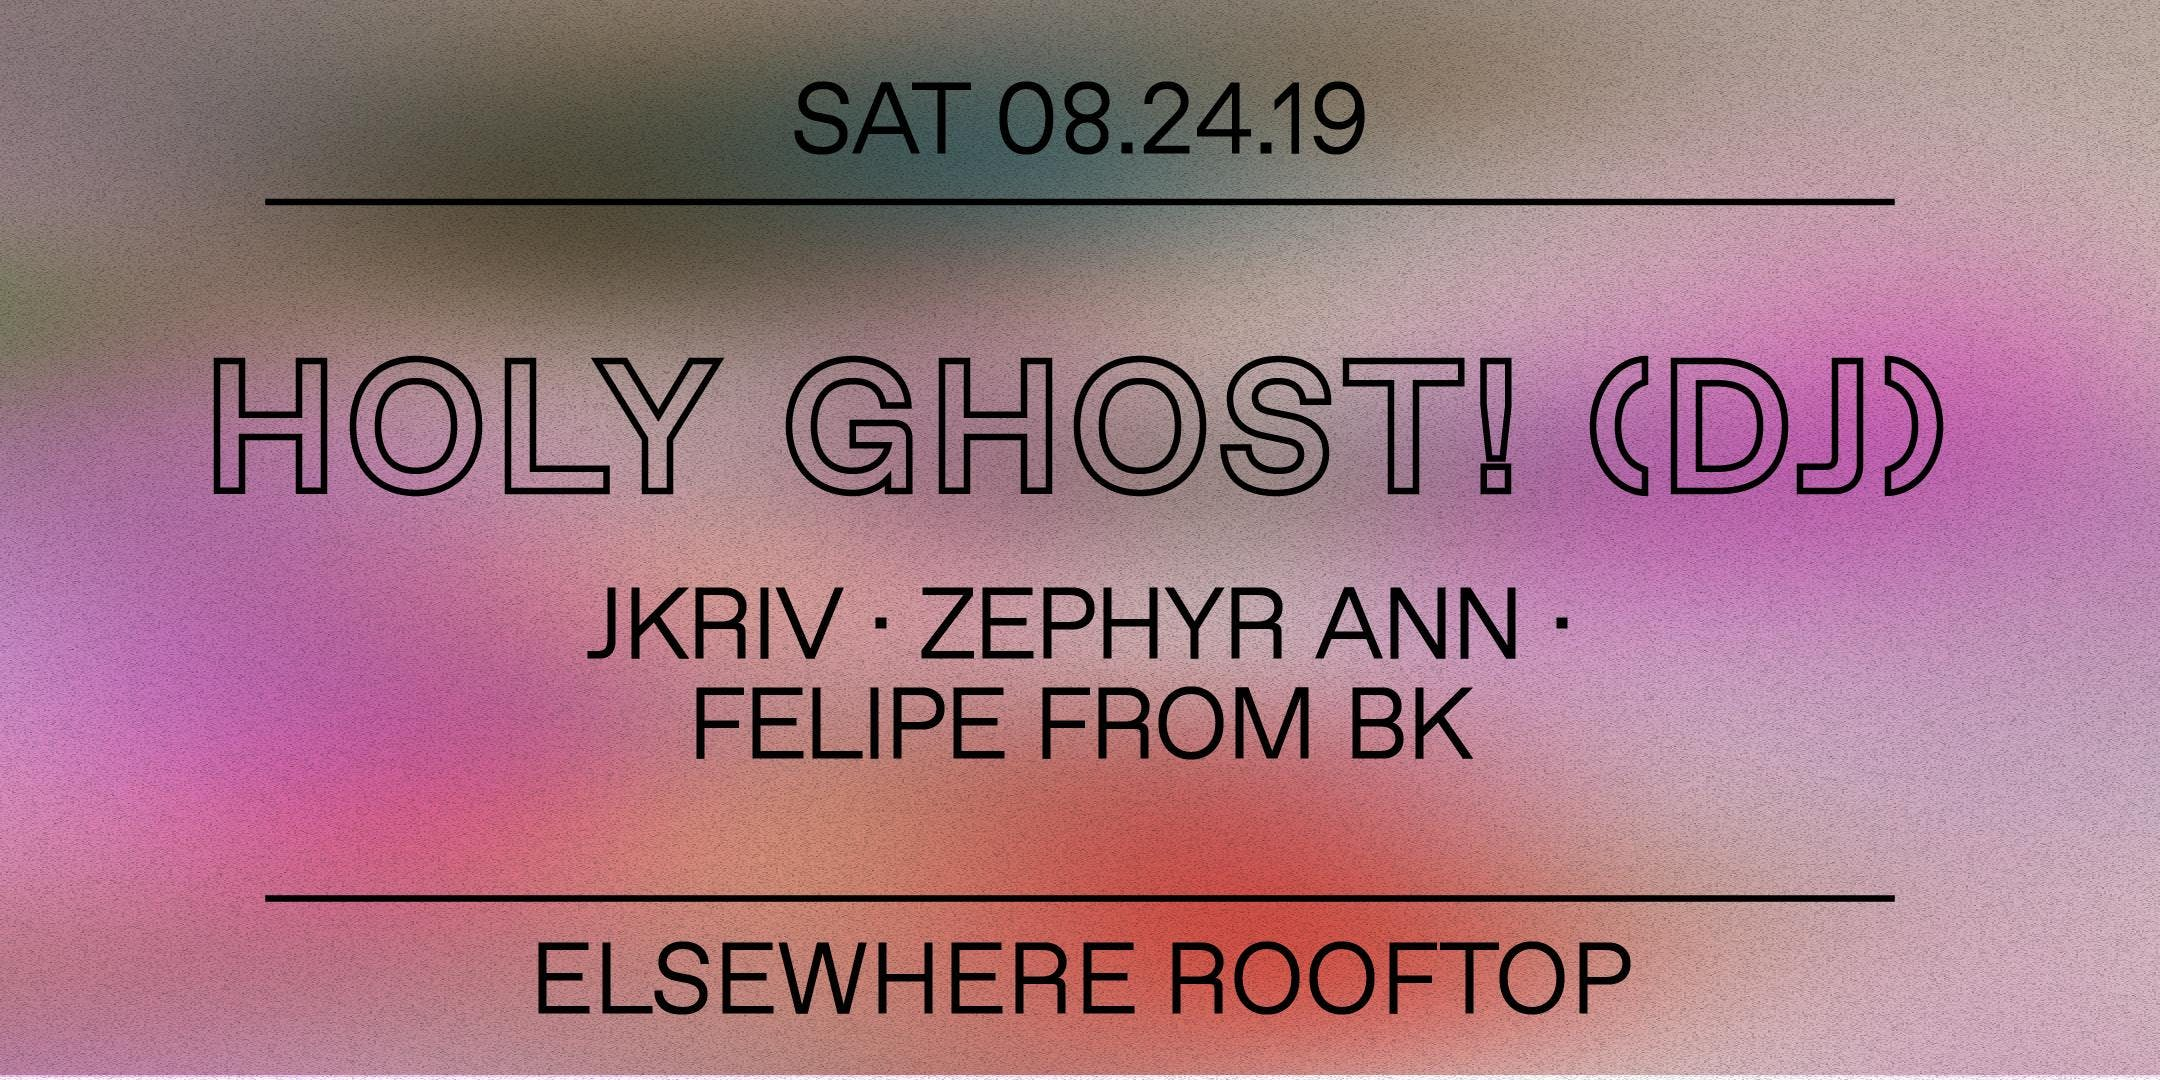 Holy Ghost! (DJ Set), JKriv, Zephyr Ann & Felipe from BK